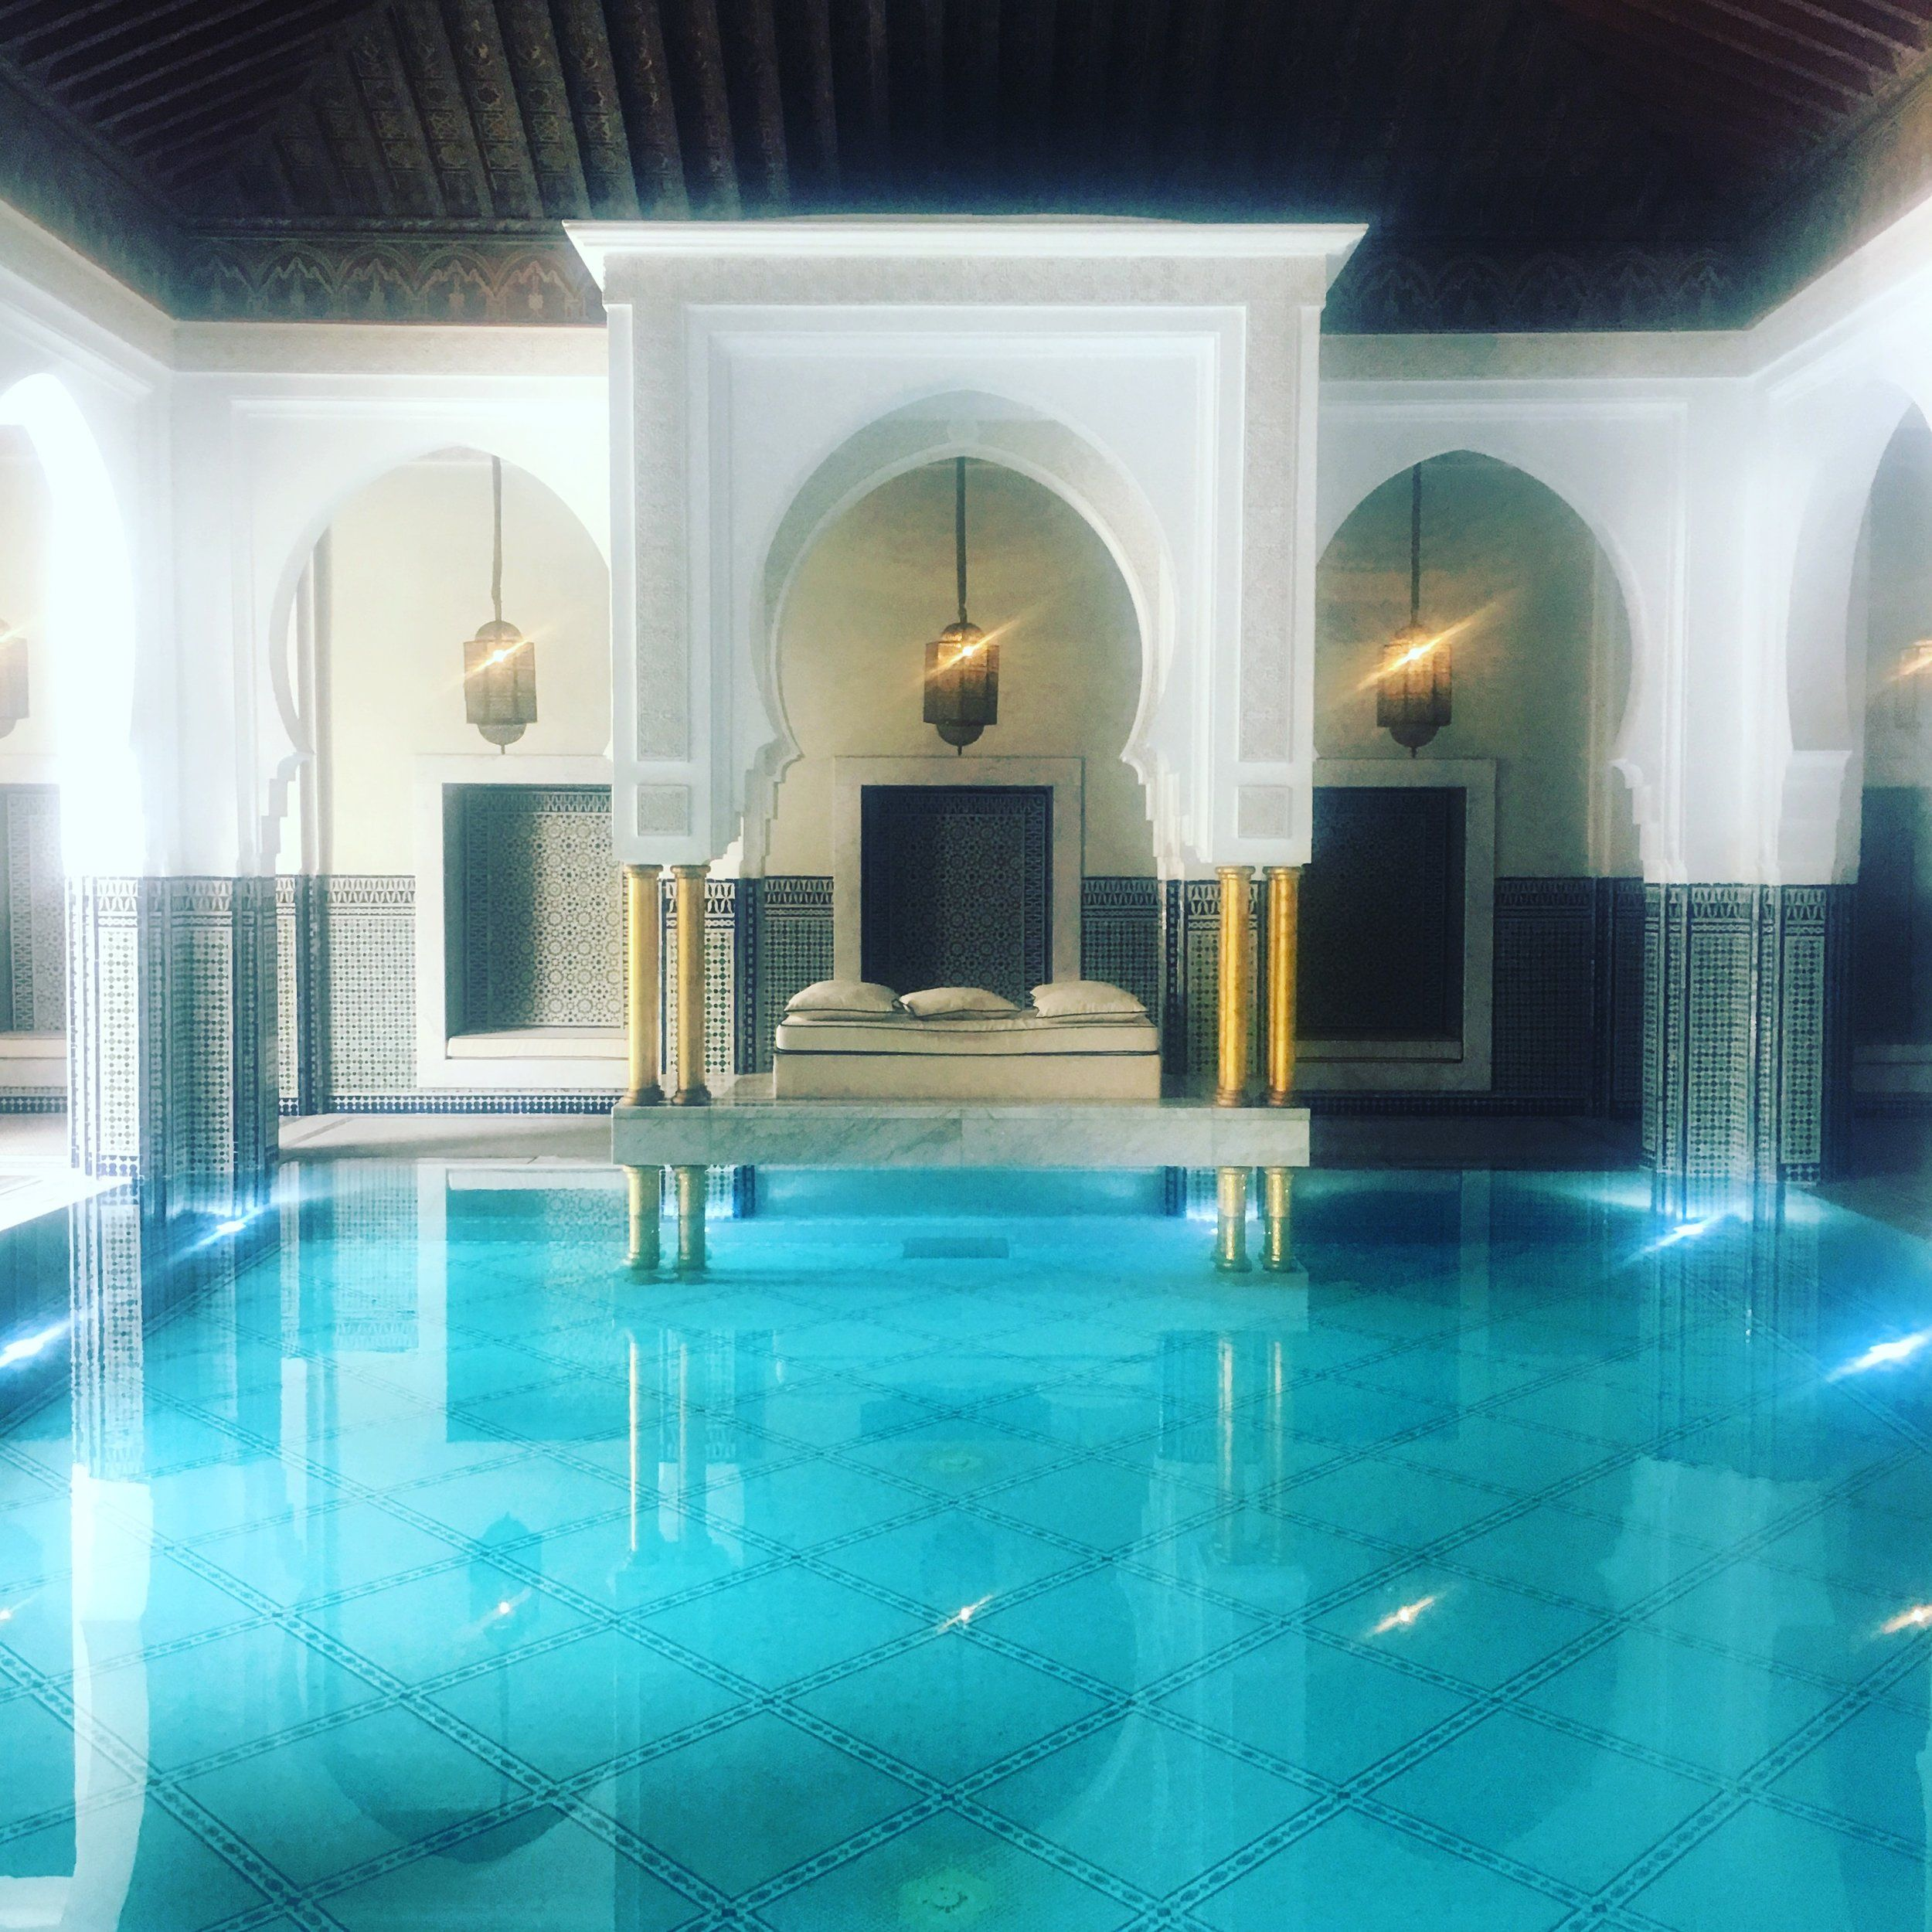 Swimming Pool Dehumidification Design Design And Style Home Furnishing Indoor Pool Design Guide Nat 13379 Indoor Pool Design Ventilation Design House Design